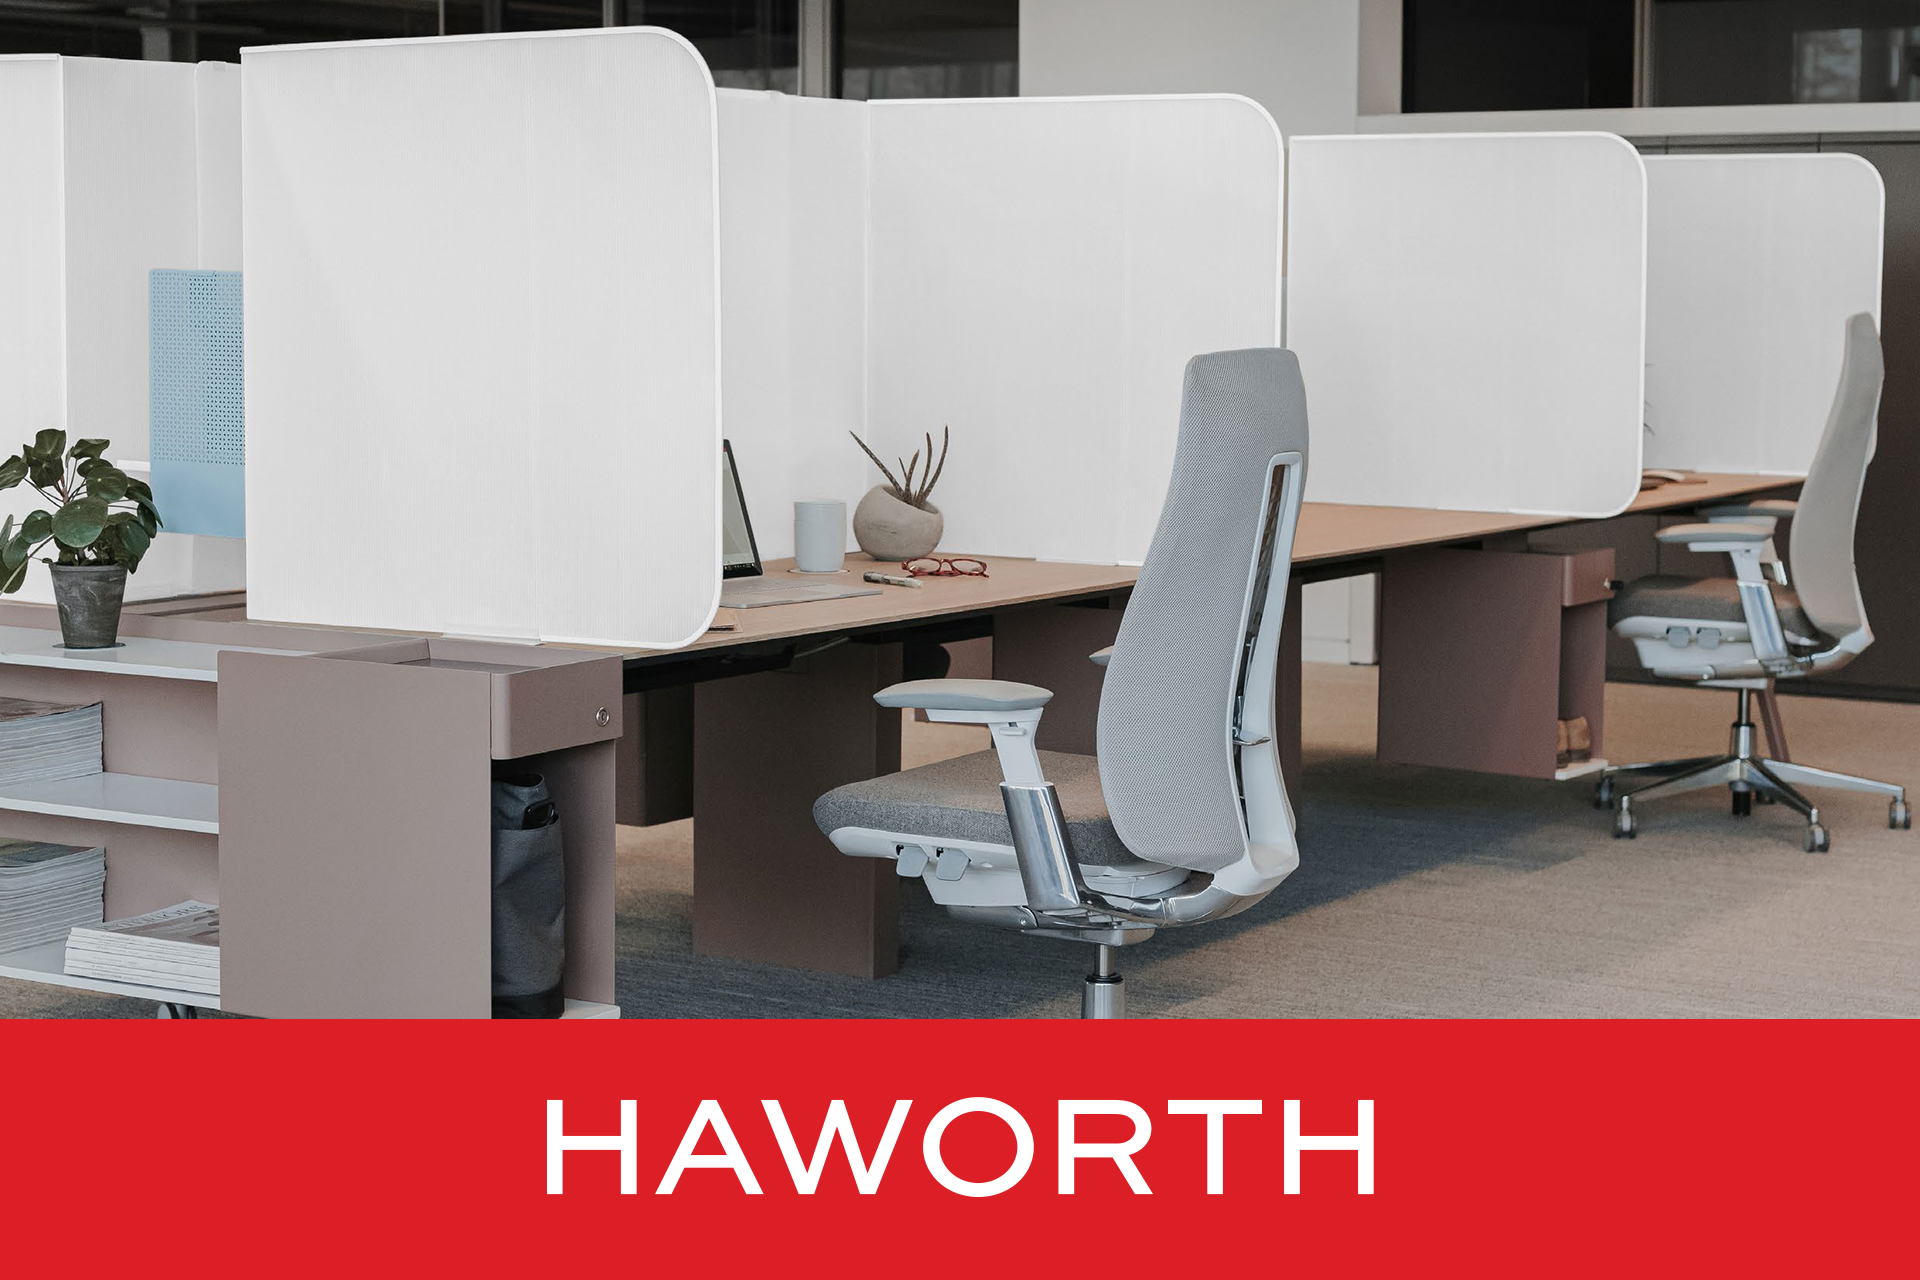 Haworth Lightweight Desktop Separation Screen Products For Physical Distancing